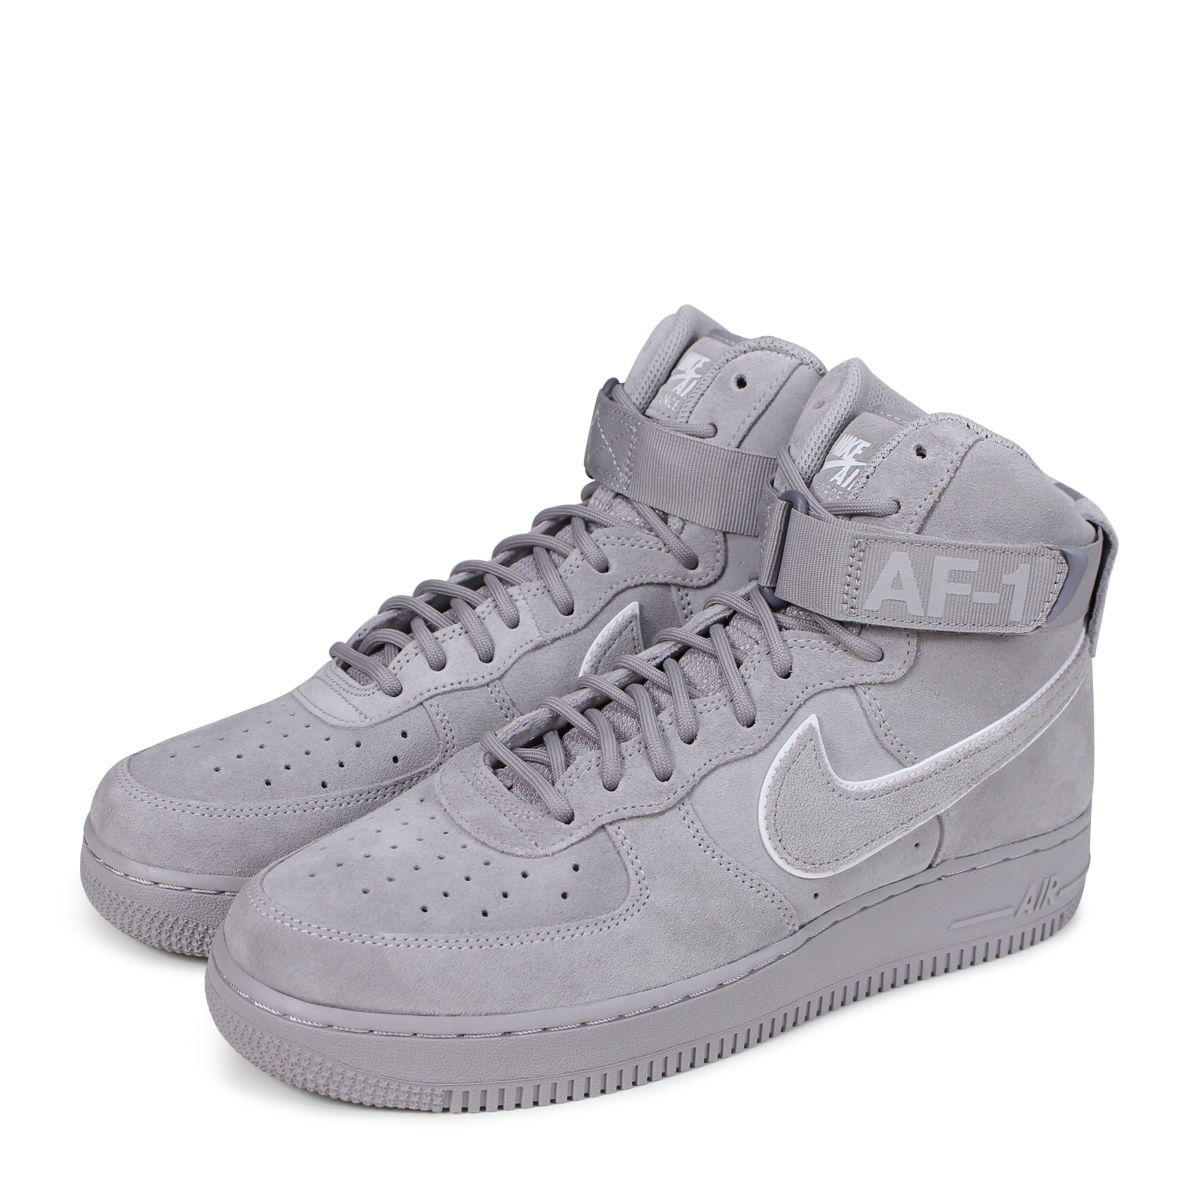 a735d7bfa42 ALLSPORTS  NIKE AIR FORCE 1 07 LV8 HIGH Nike air force 1 sneakers ...